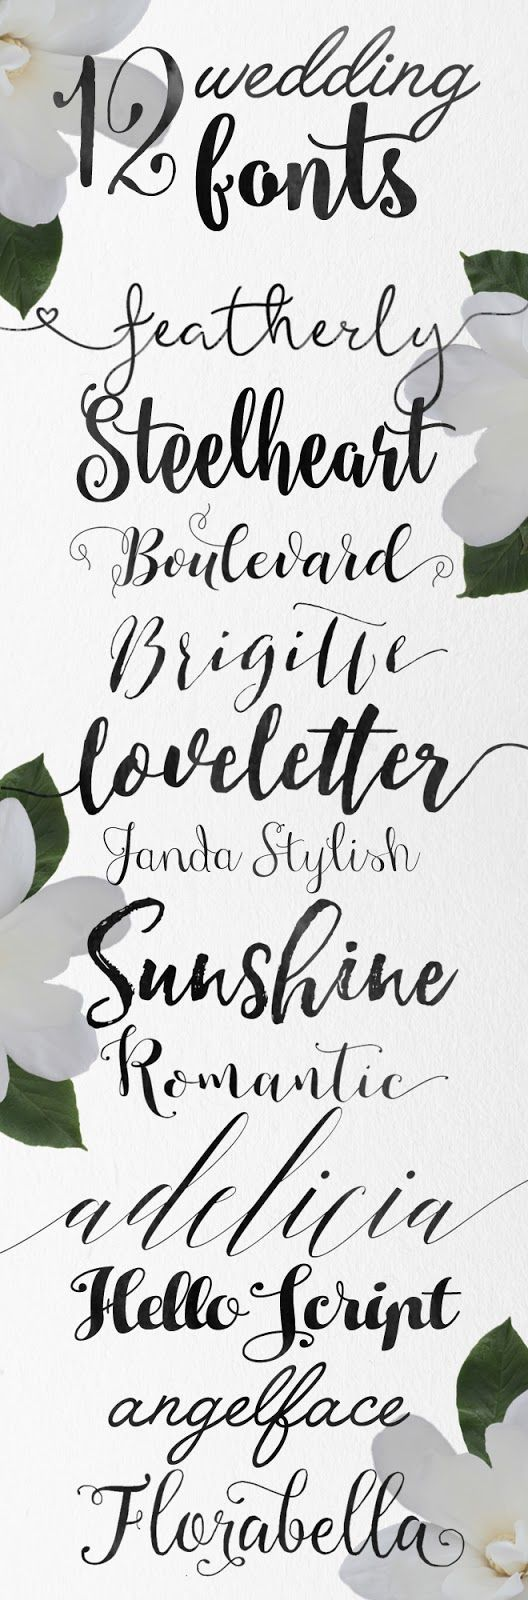 Calligraphy Tattoo Pinterest Skyla Design Calligraphy Wedding Fonts Some Free Tattoo